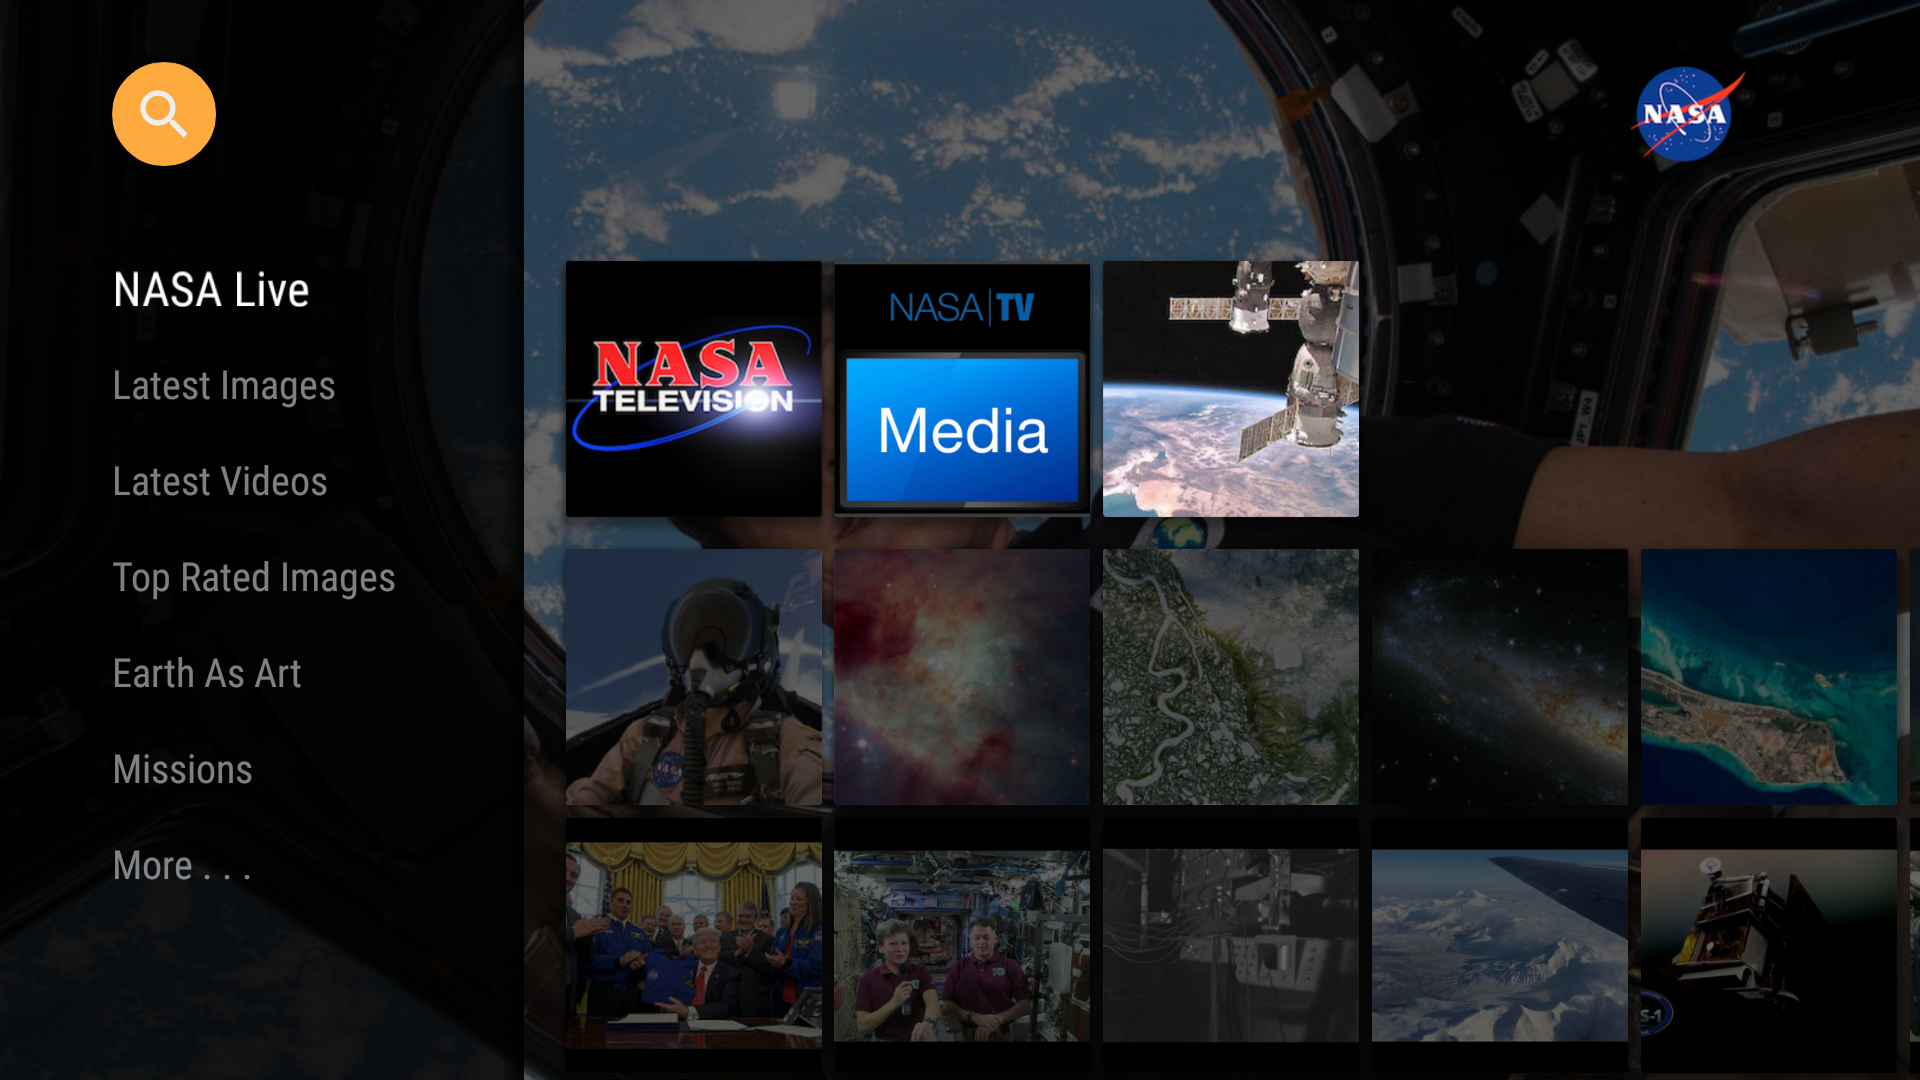 Nasa launches app for amazon fire tv